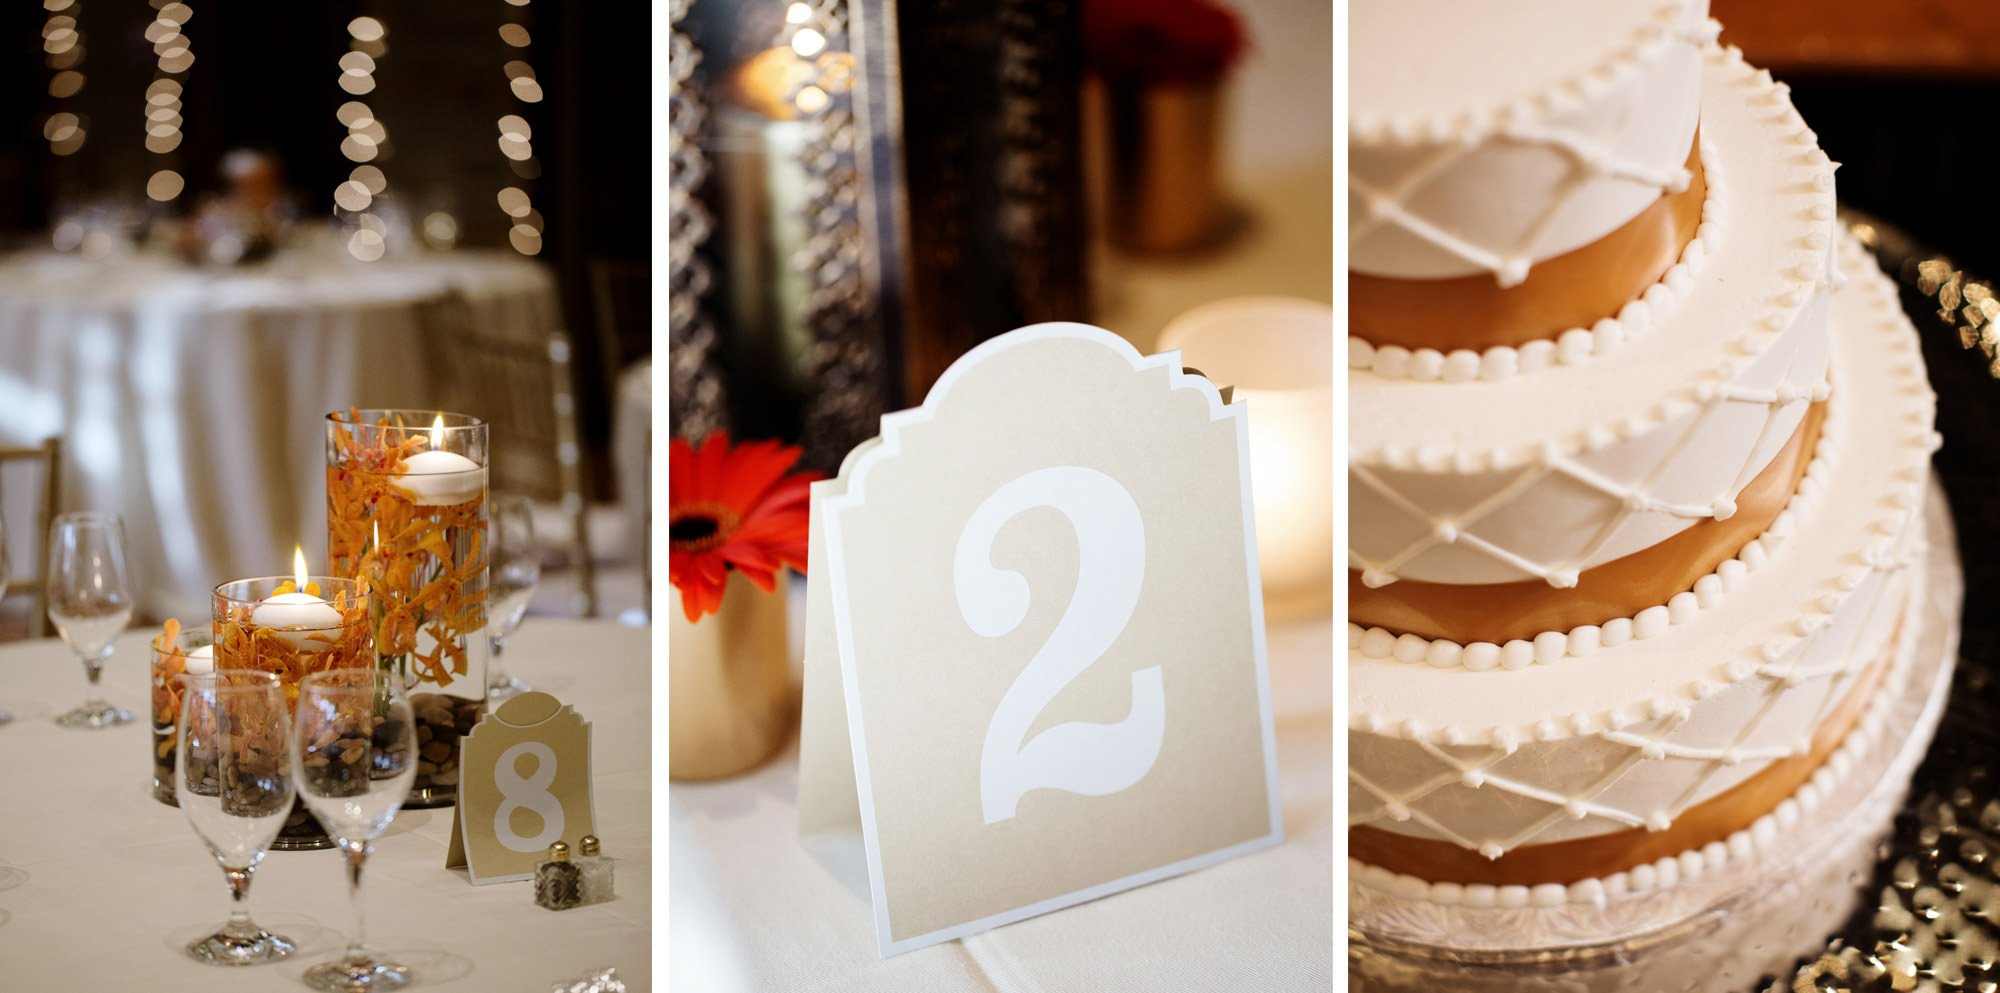 Details of the cake and table settings at this St Francis Hall wedding.